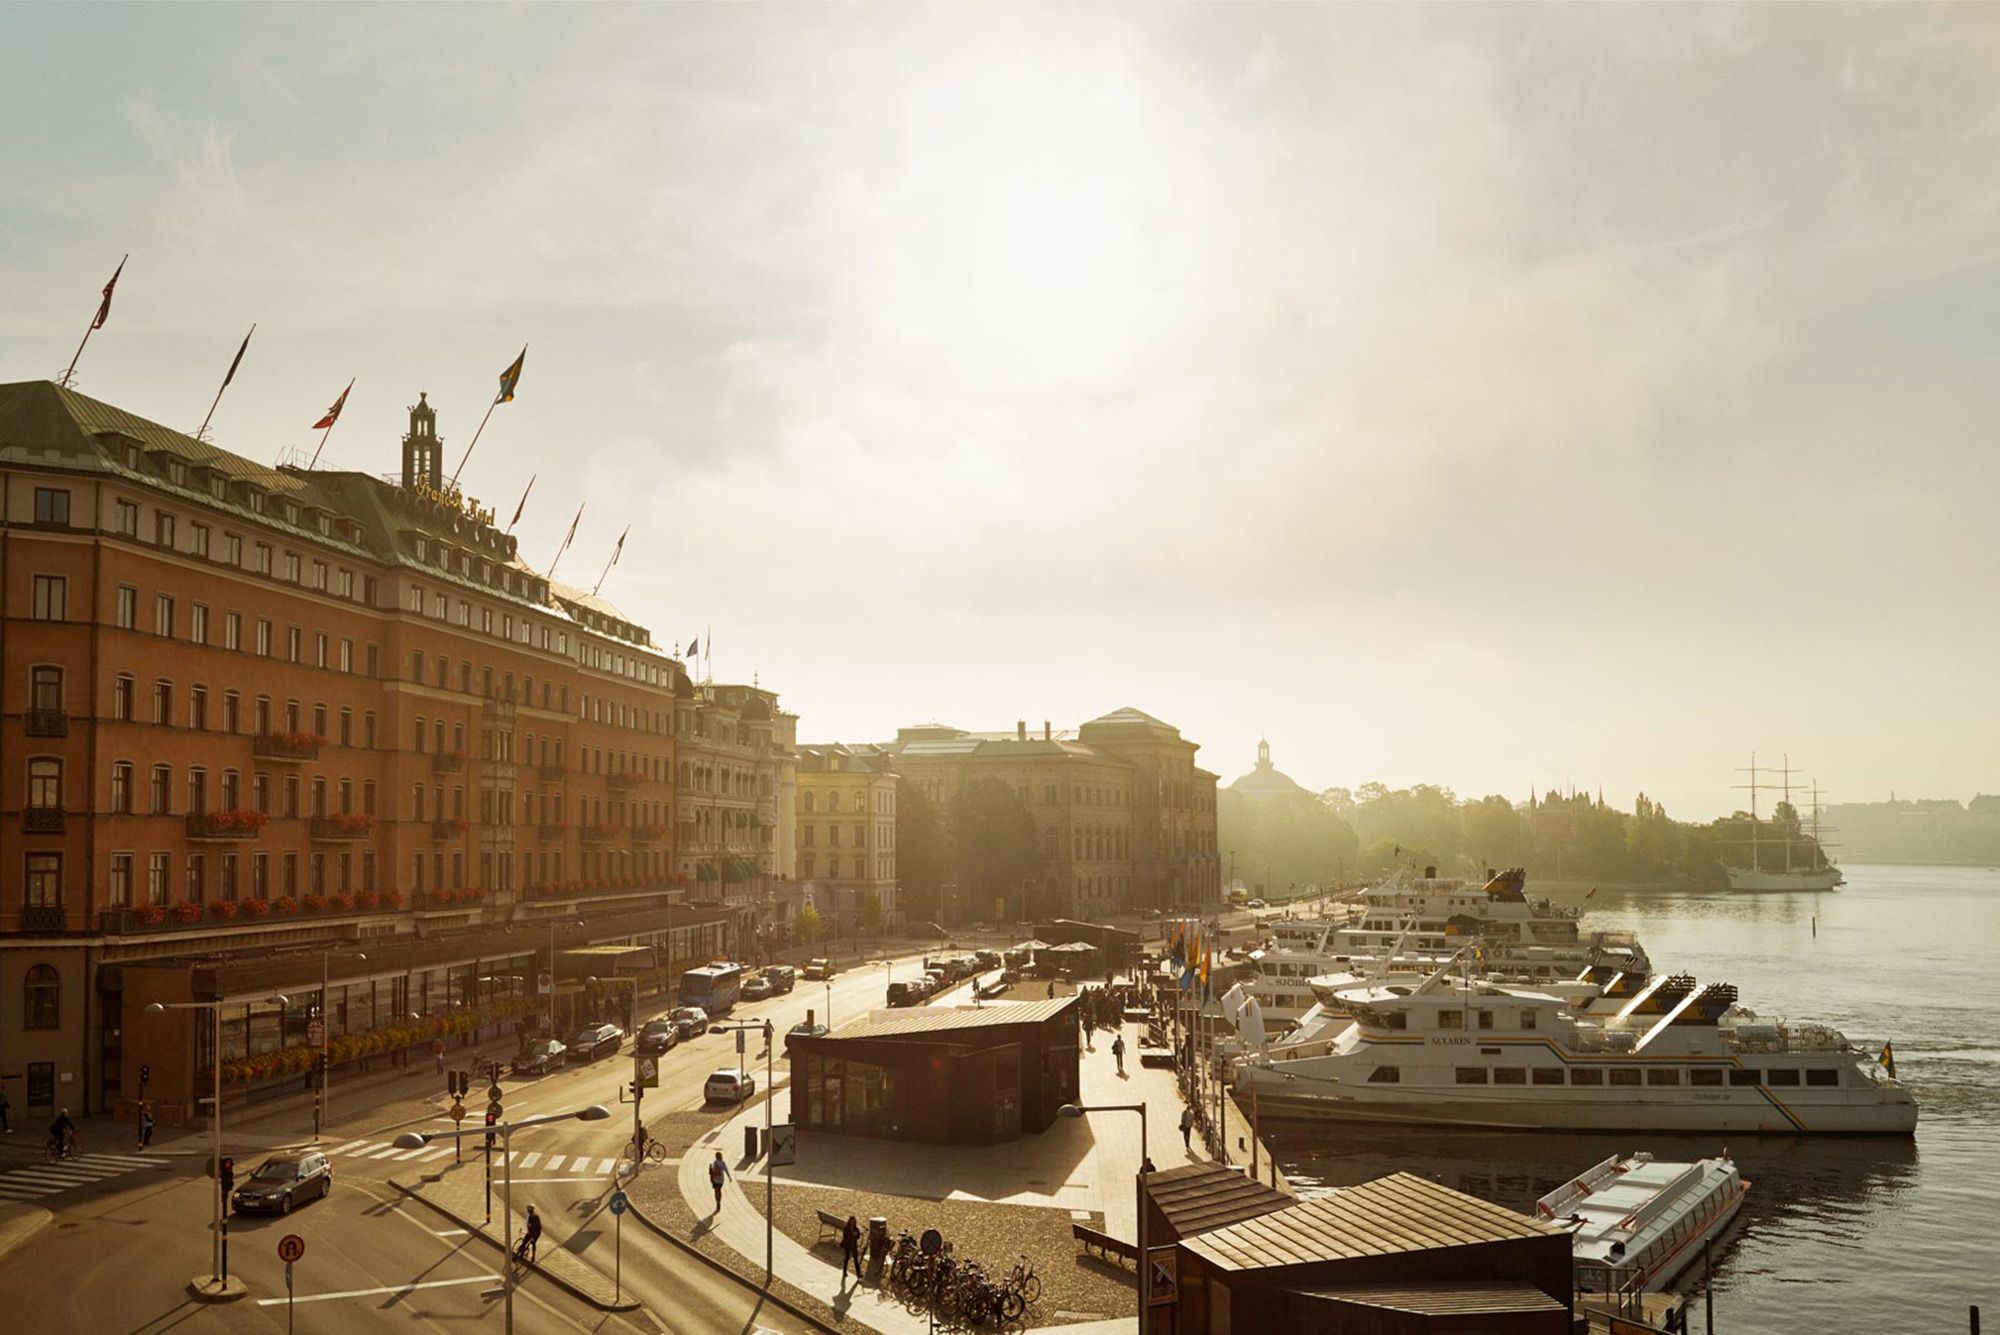 The luxurious 5-star Grand Hotel, Stockholm situated on the waterfront with beautiful views.